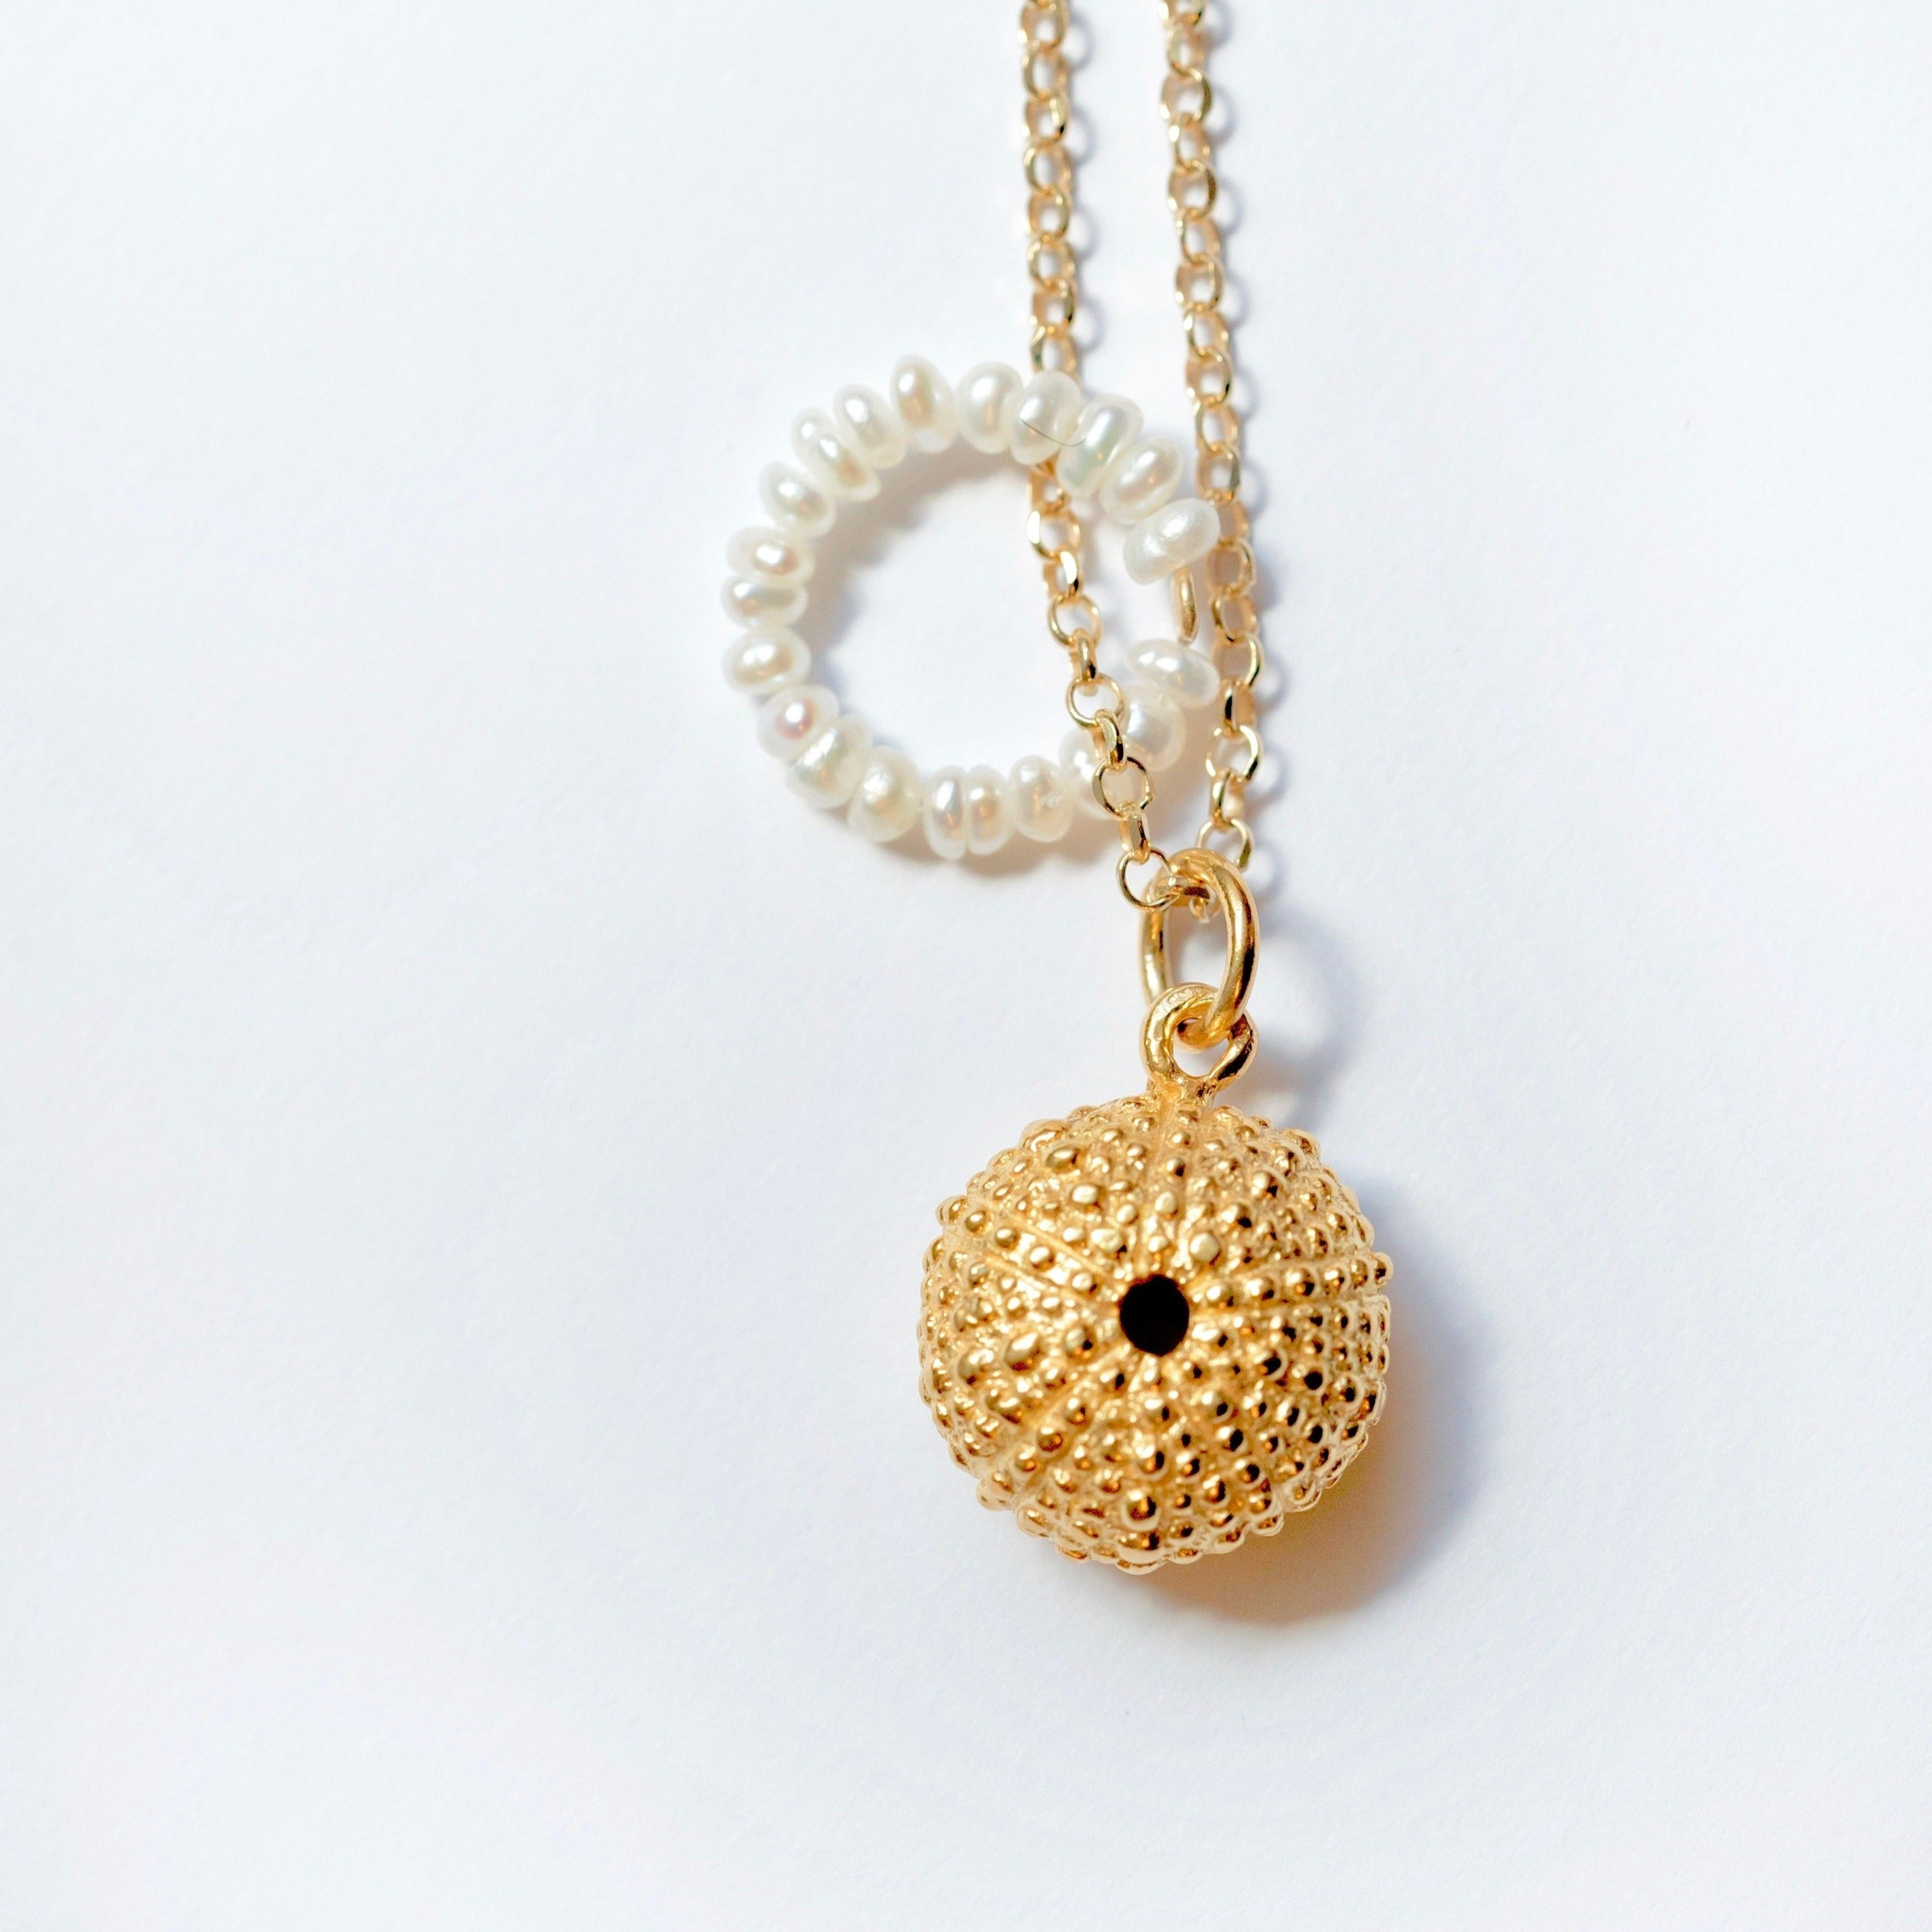 Necklace Sea Urchin - Pearls - Gold Plated